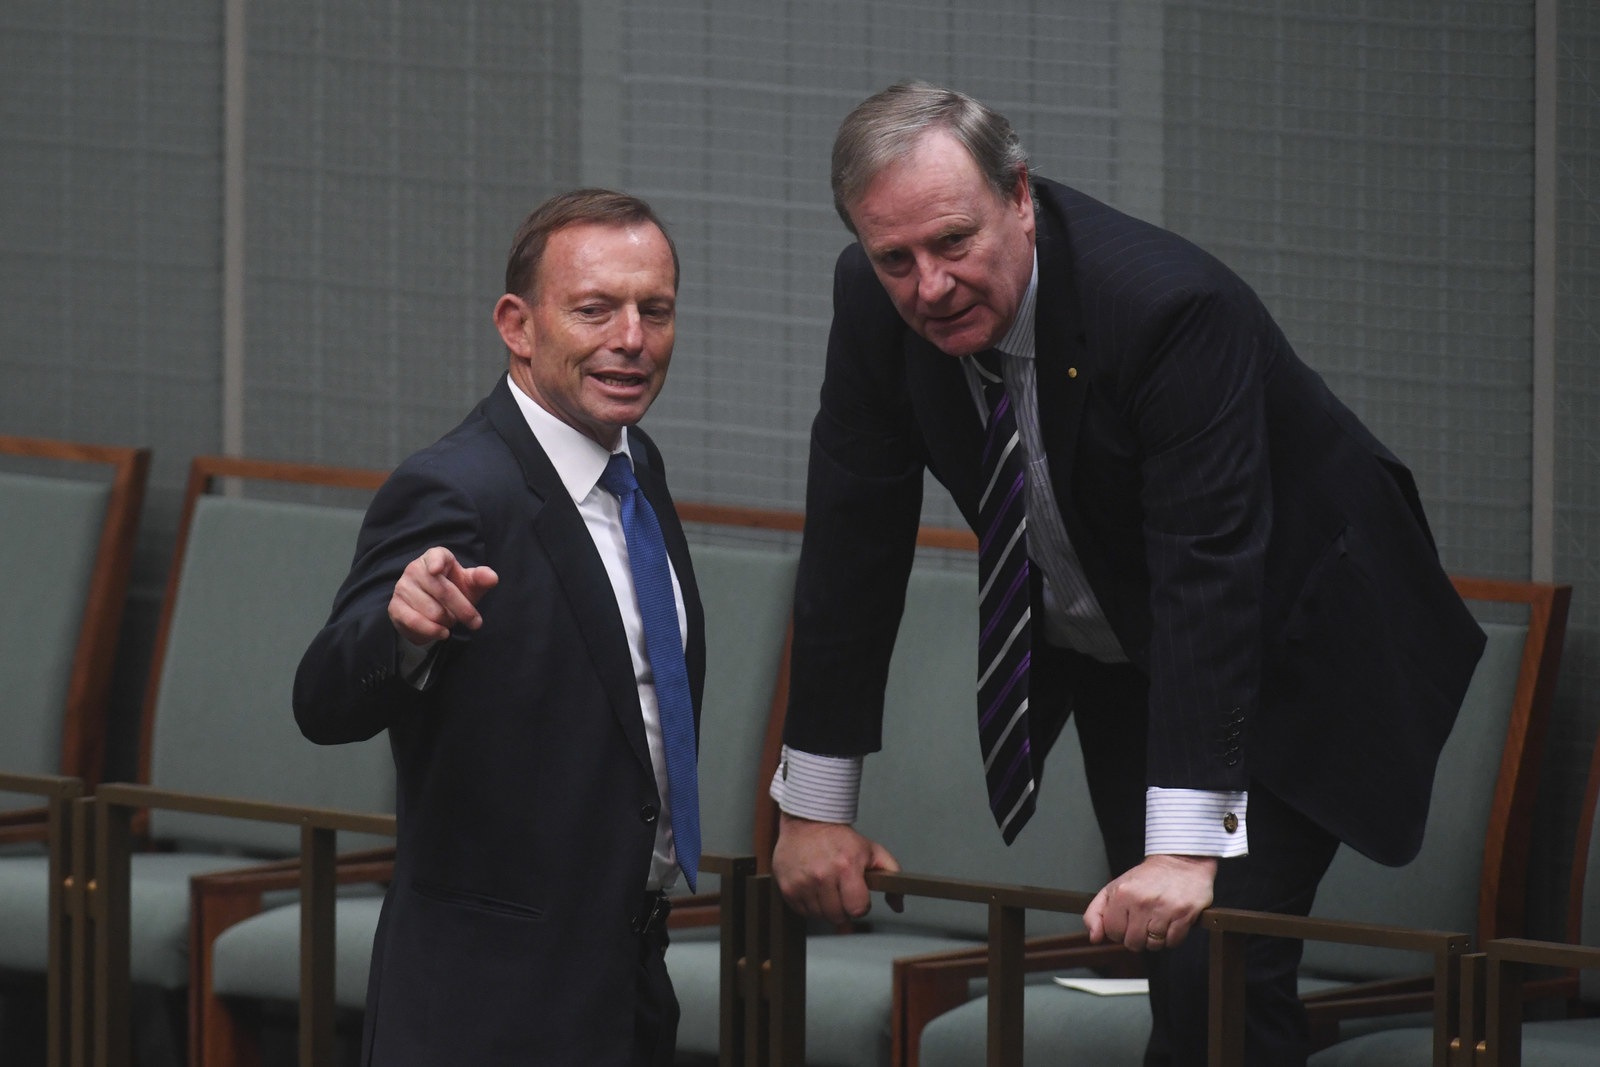 Former prime minister Tony Abbott and Peter Costello.